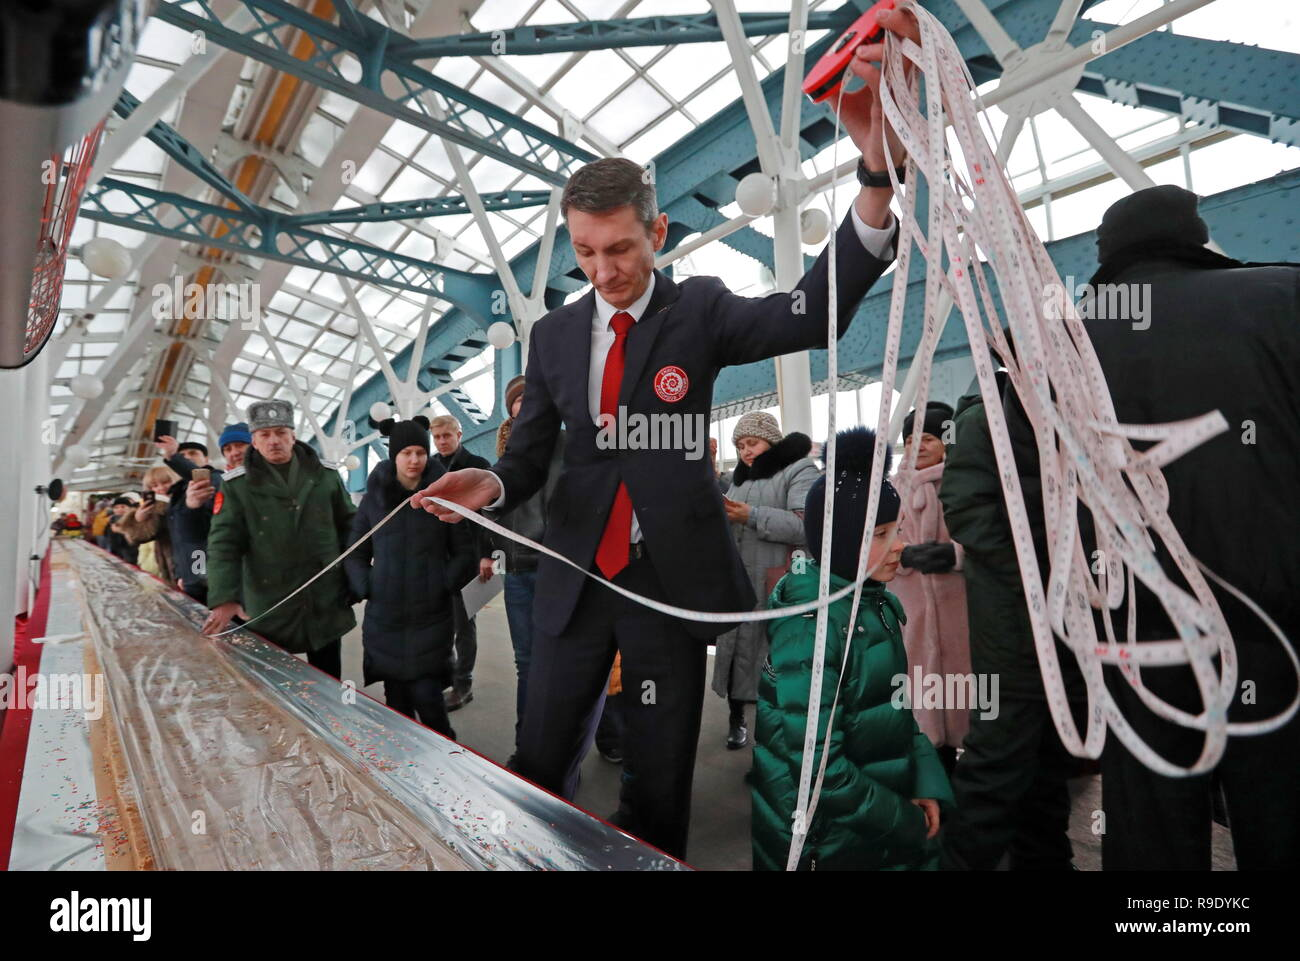 Moscow, Russia. 23rd Dec, 2018.  Measuring halva prepared by cooks from the 7 North Caucasus regions on the Bogdan Khmelnitsky Bridge. The 65.5-metre long confection weighing 570 kg has entered the Russian Book of Records as the largest.  Credit: ITAR-TASS News Agency/Alamy Live News - Stock Image